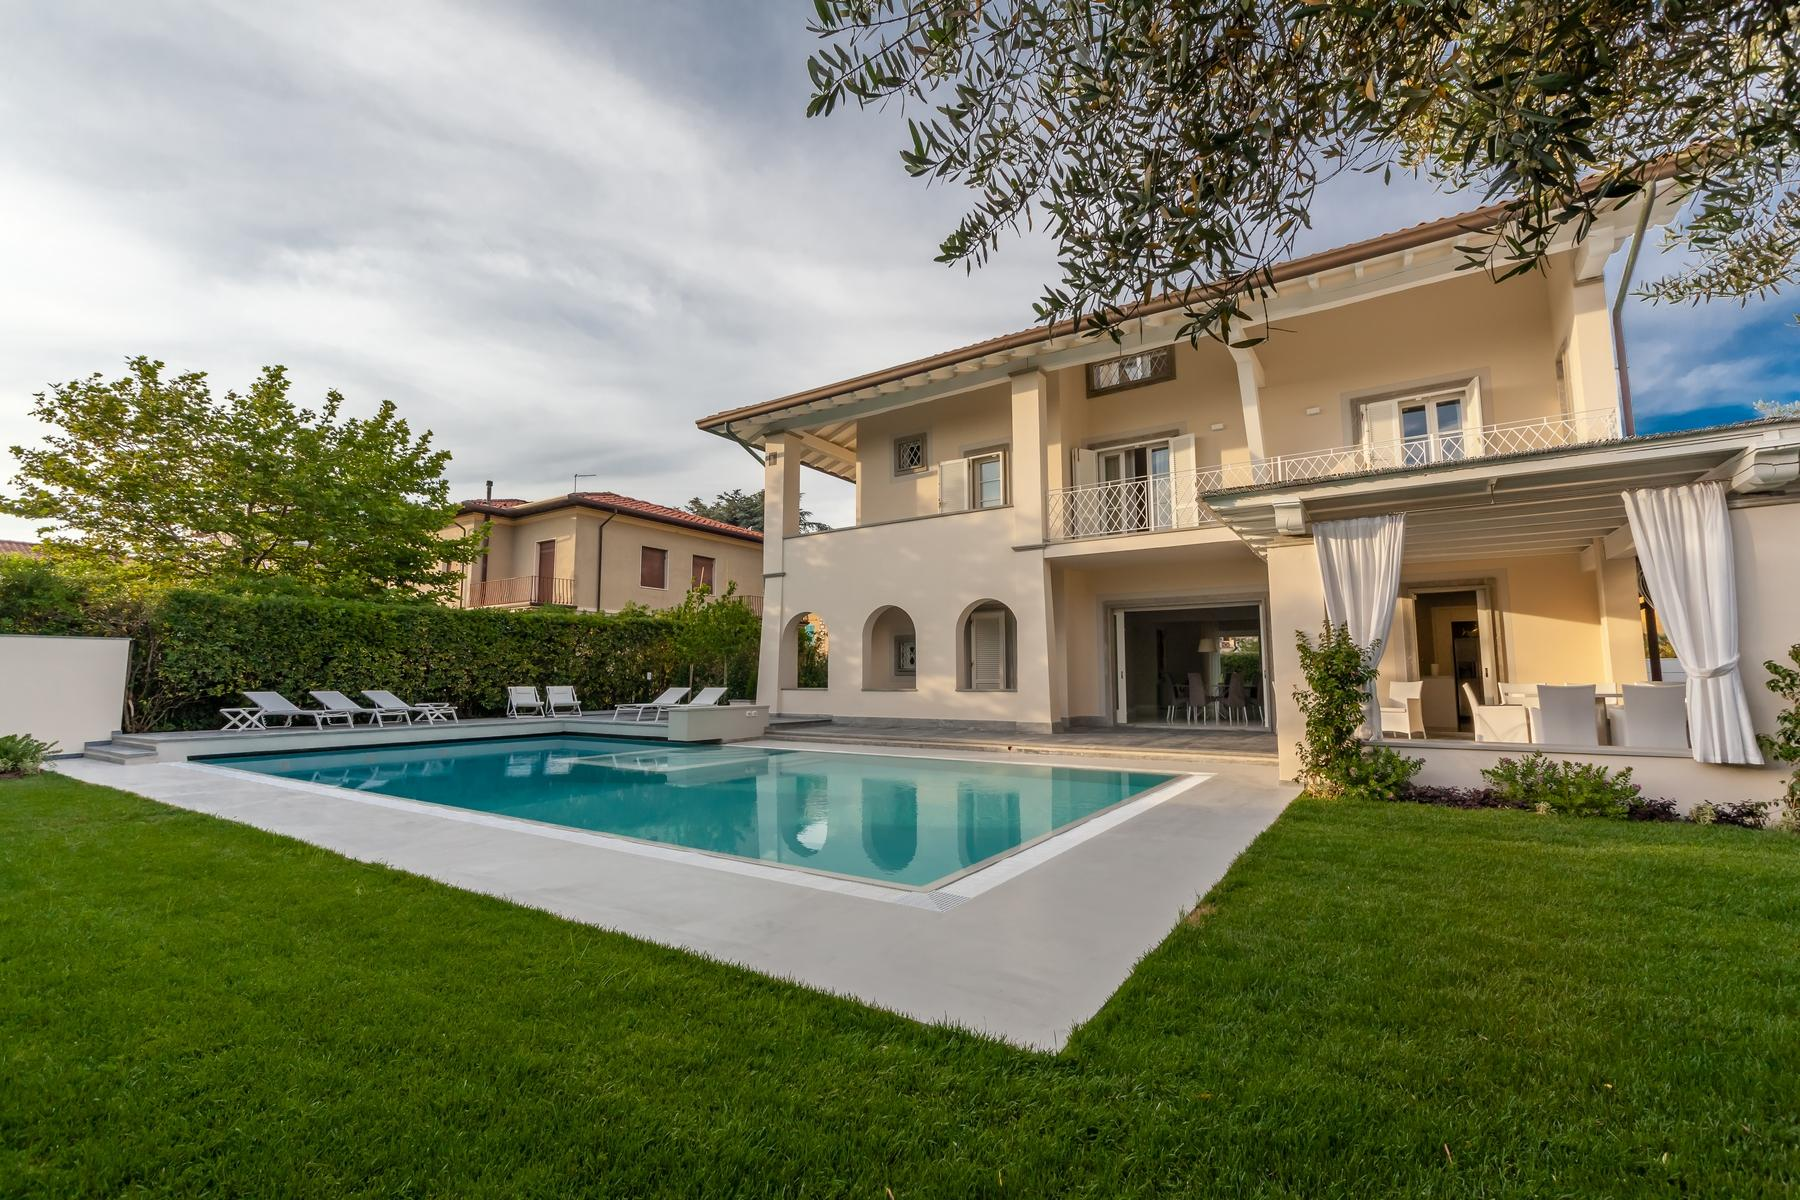 Splendid villa with swimming pool in Forte dei Marmi - 1